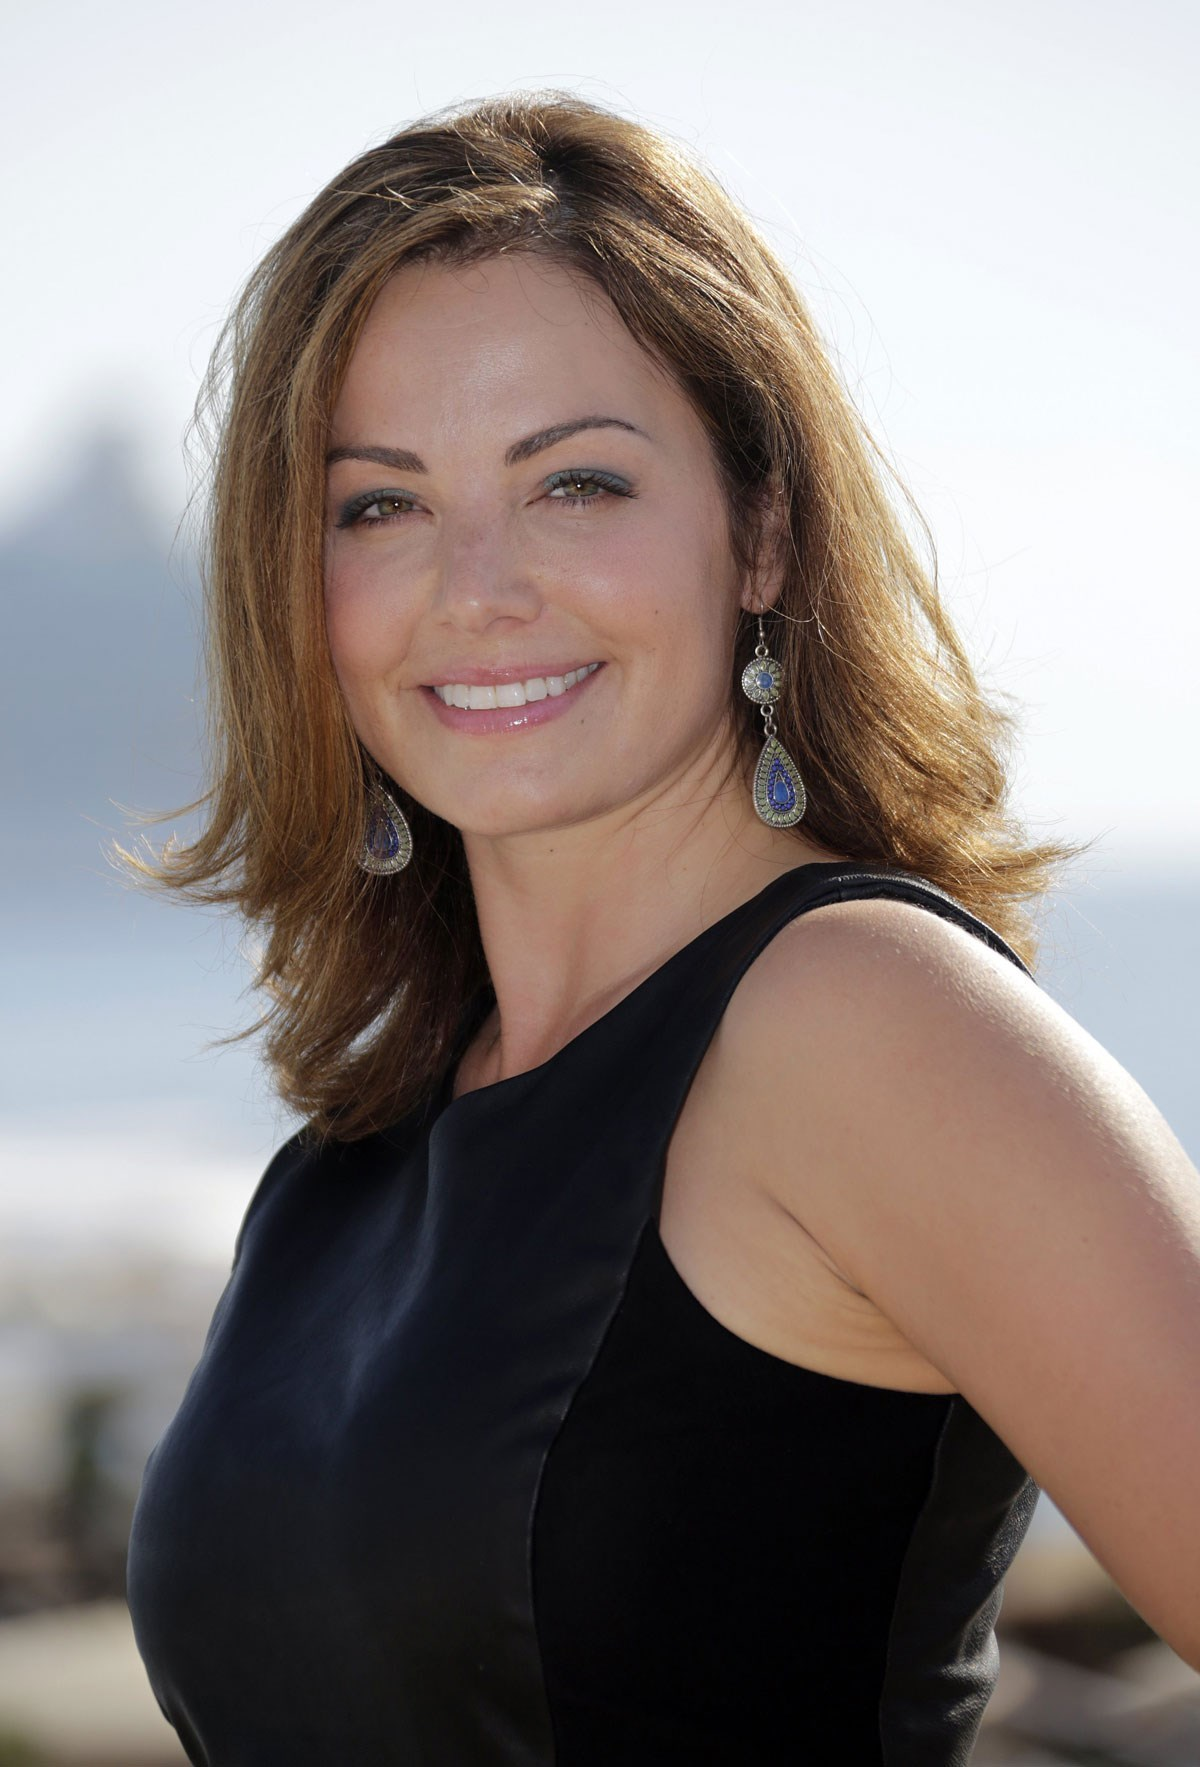 Erica Durance images 52